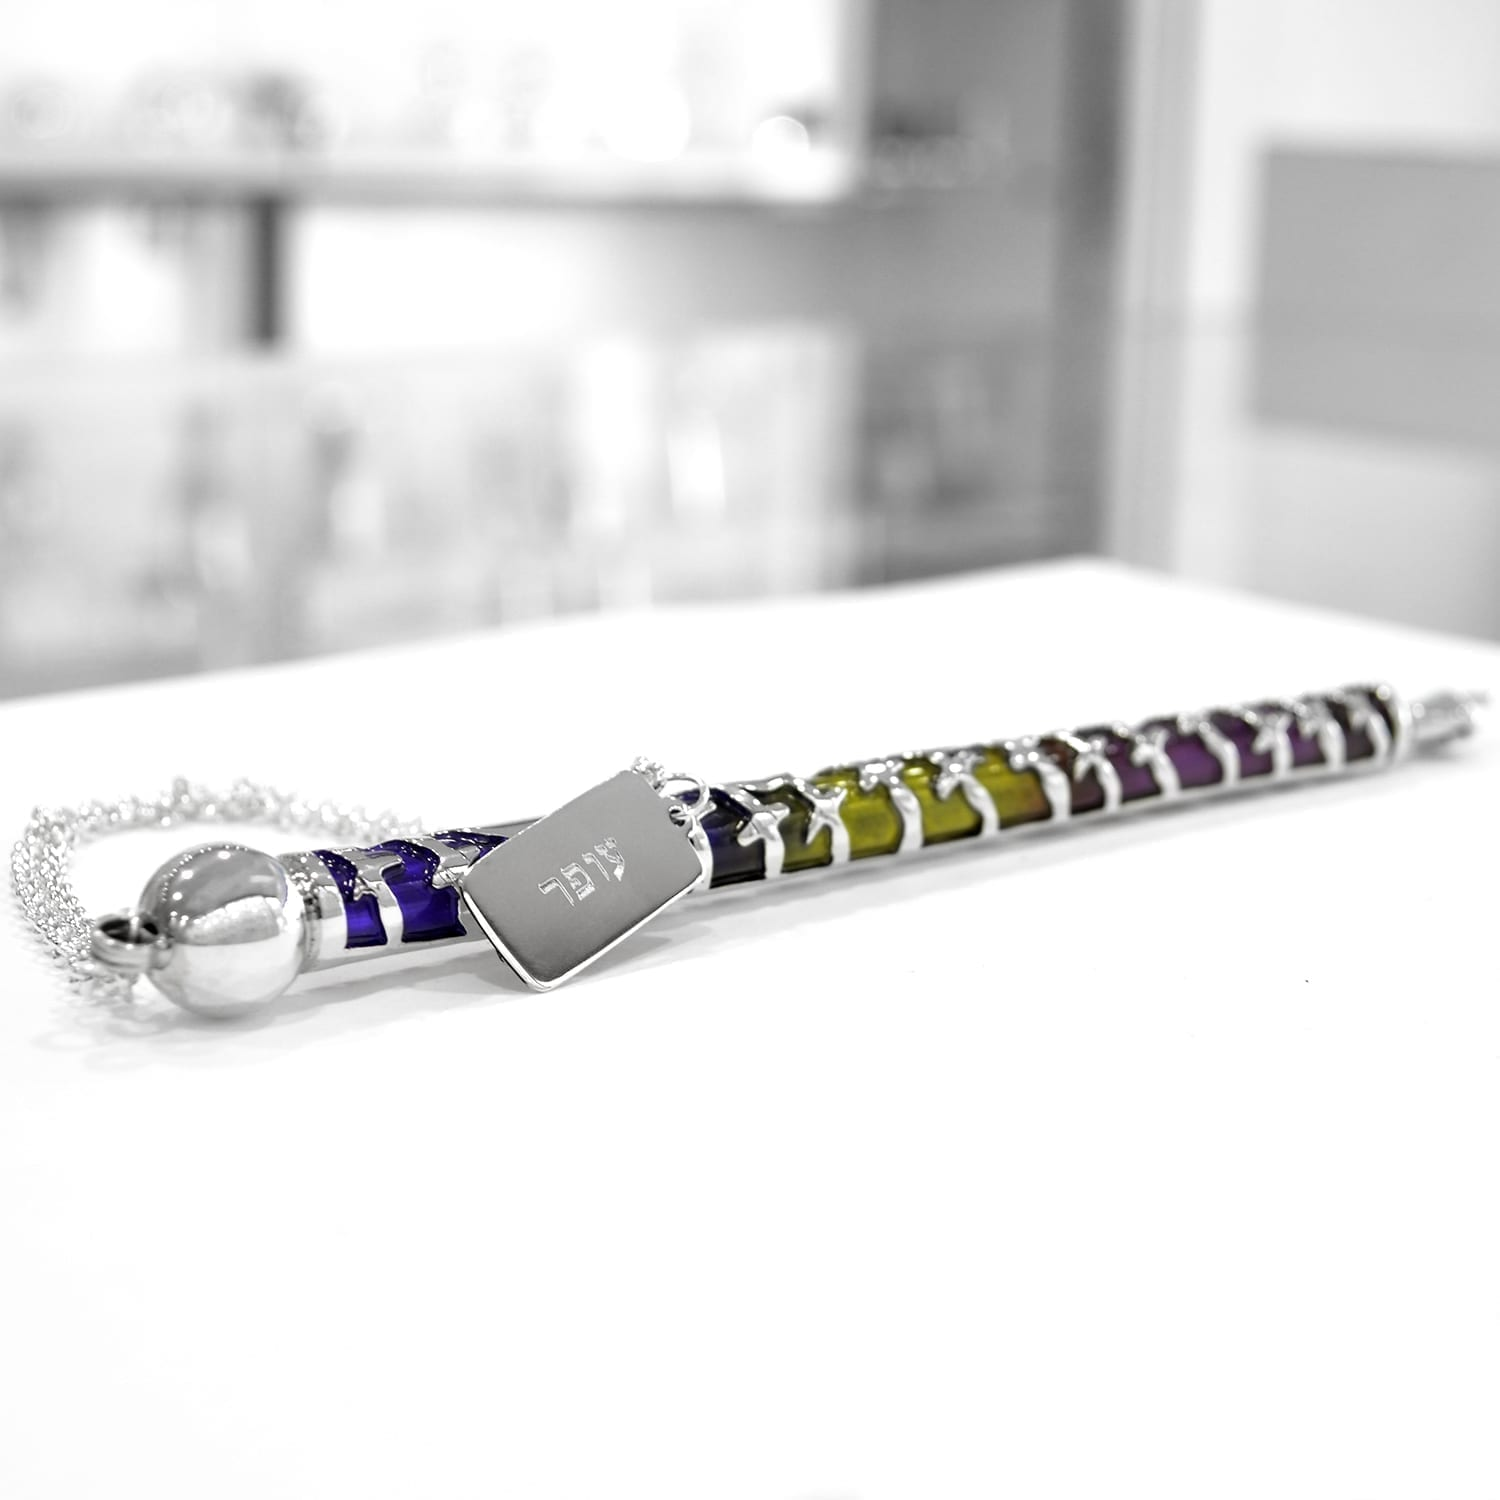 Glorious colorful cold enamel sterling silver Torah Pointer Yad. Judaica gifts made in Israel